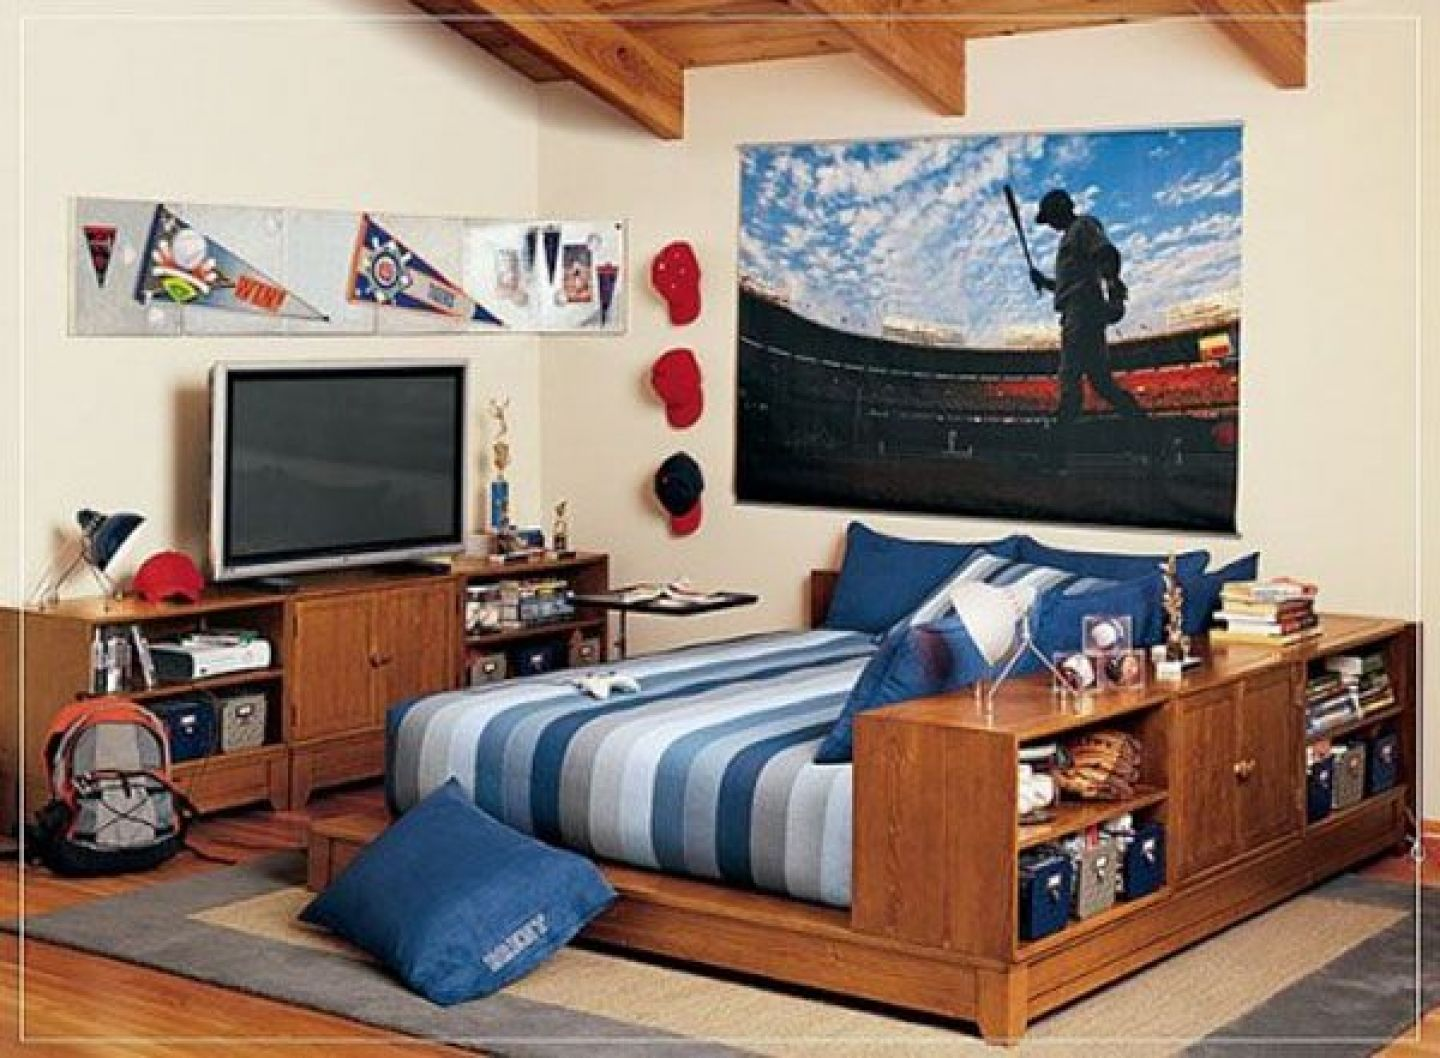 Pleasant Boy Bedroom Idea With Great Wooden Bed Frame With Bookshelves And Cool Blue Striped Bedding A Boy Bedroom Design Teenager Bedroom Boy Boys Room Design